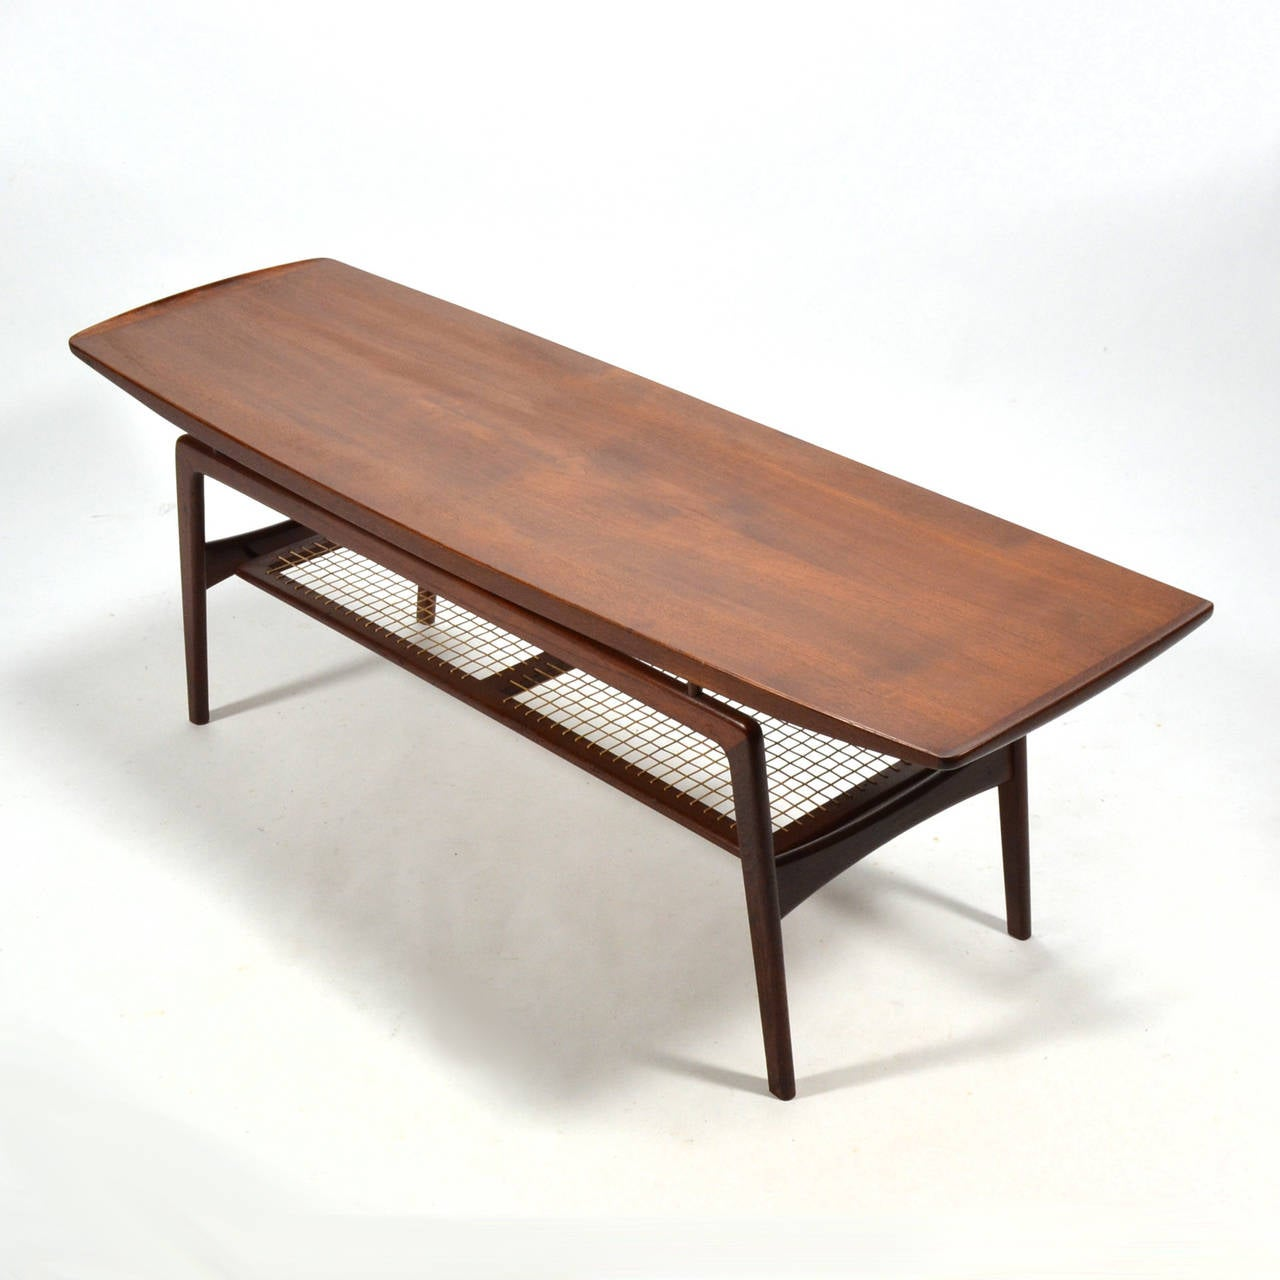 Mid-20th Century Arne Hovmand-Olsen Coffee Table For Sale